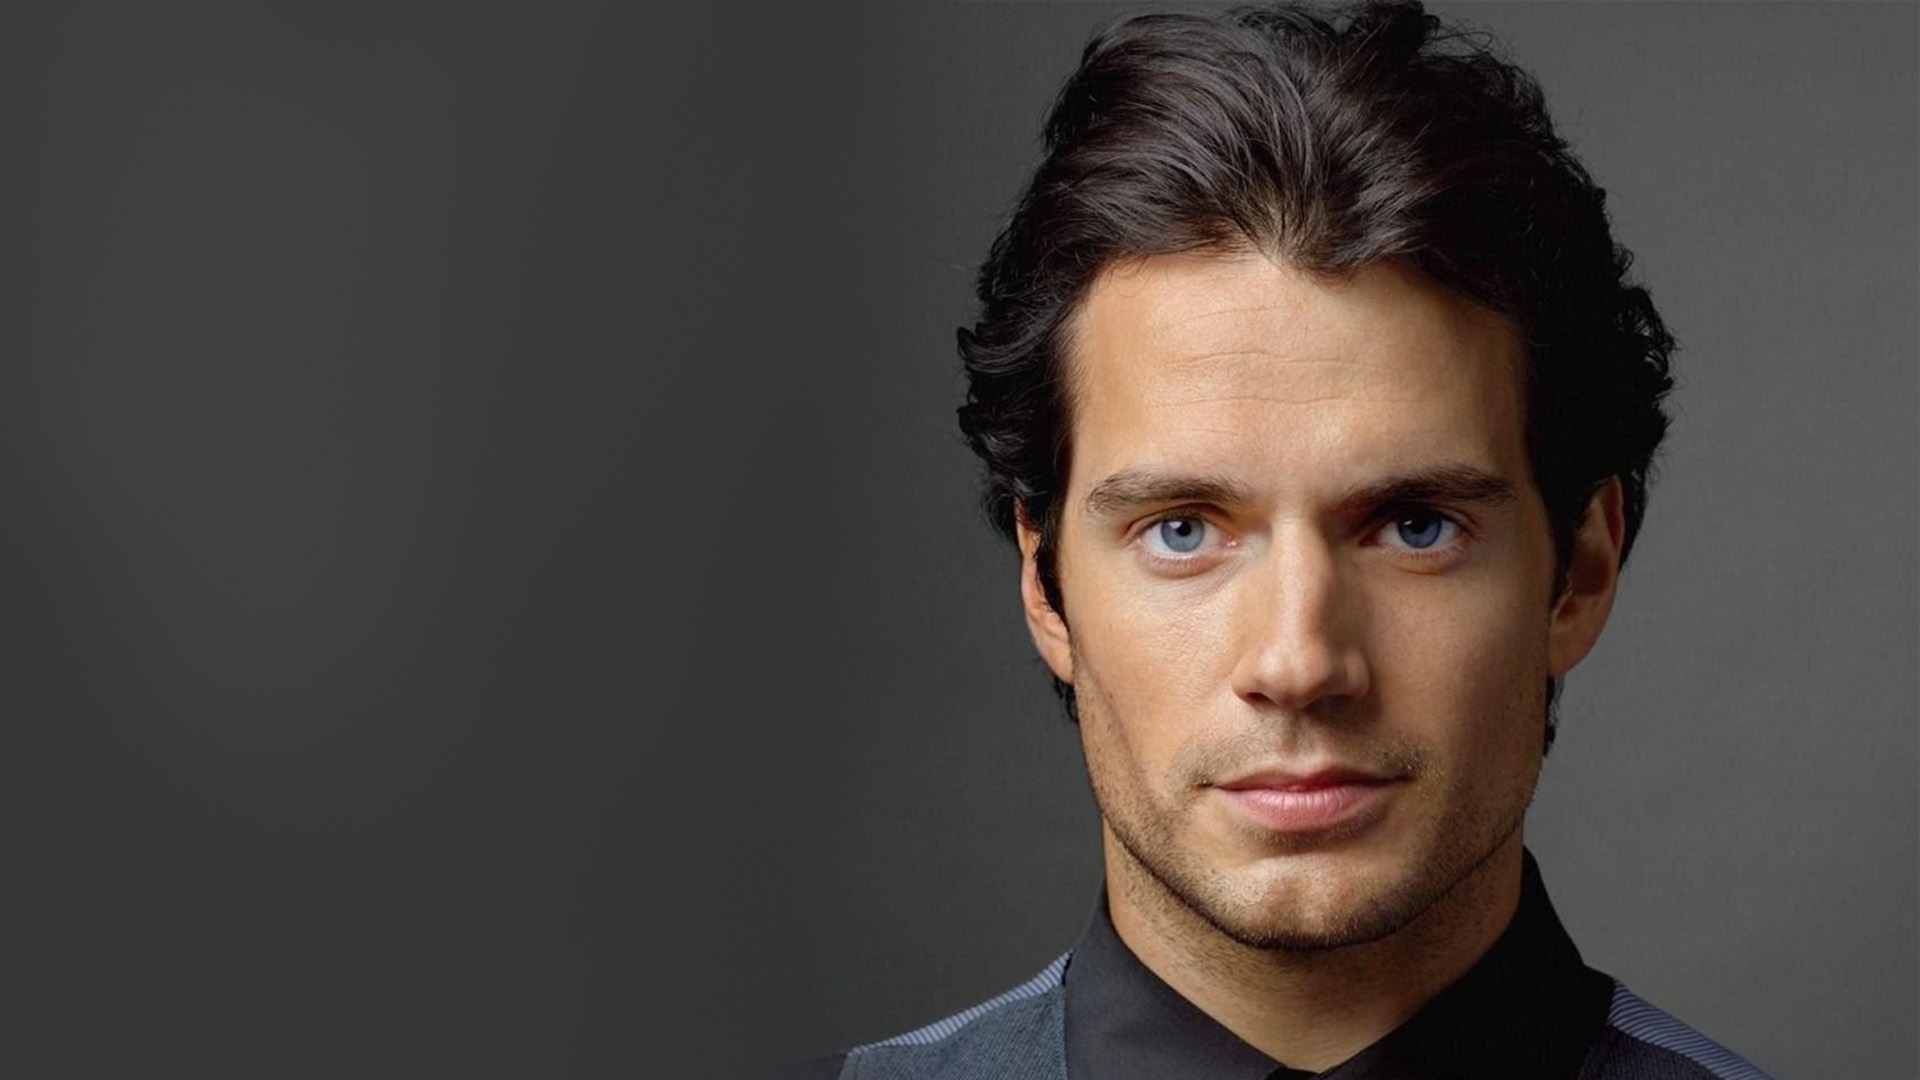 henry cavill face wallpaper 52405